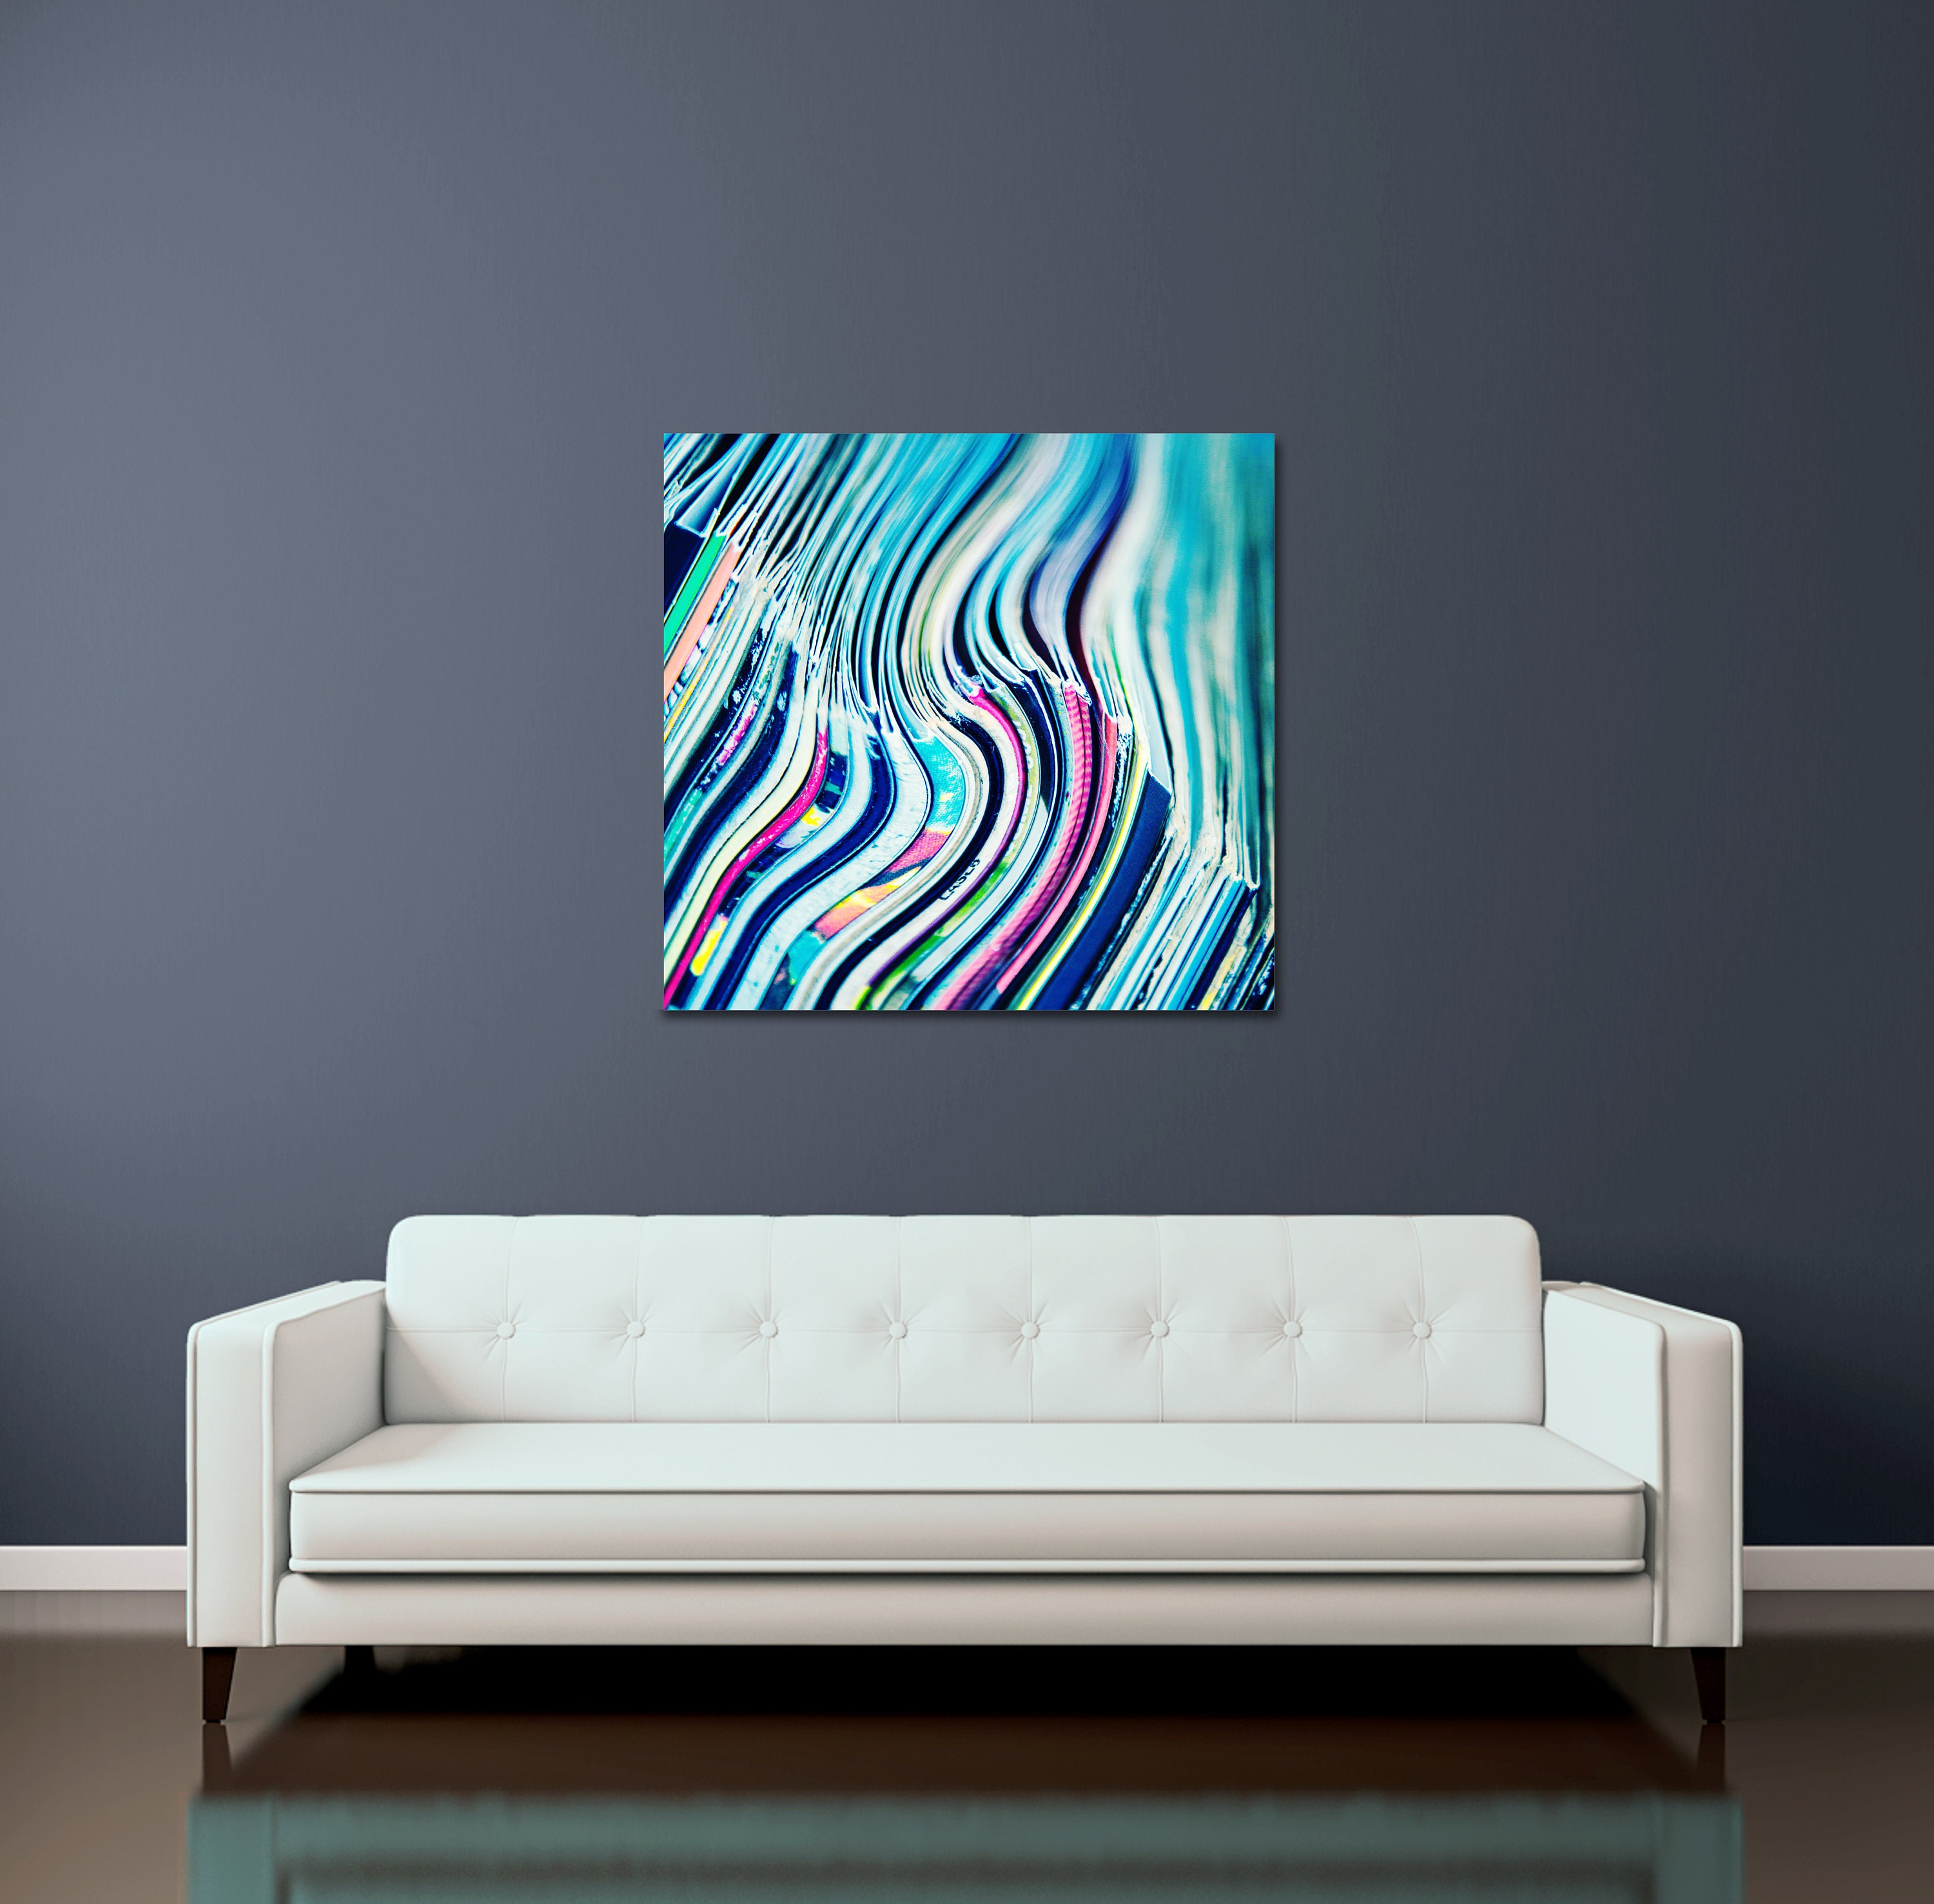 vinyl record surreal canvas wall art in custom sizes- ready to hang contemporary art